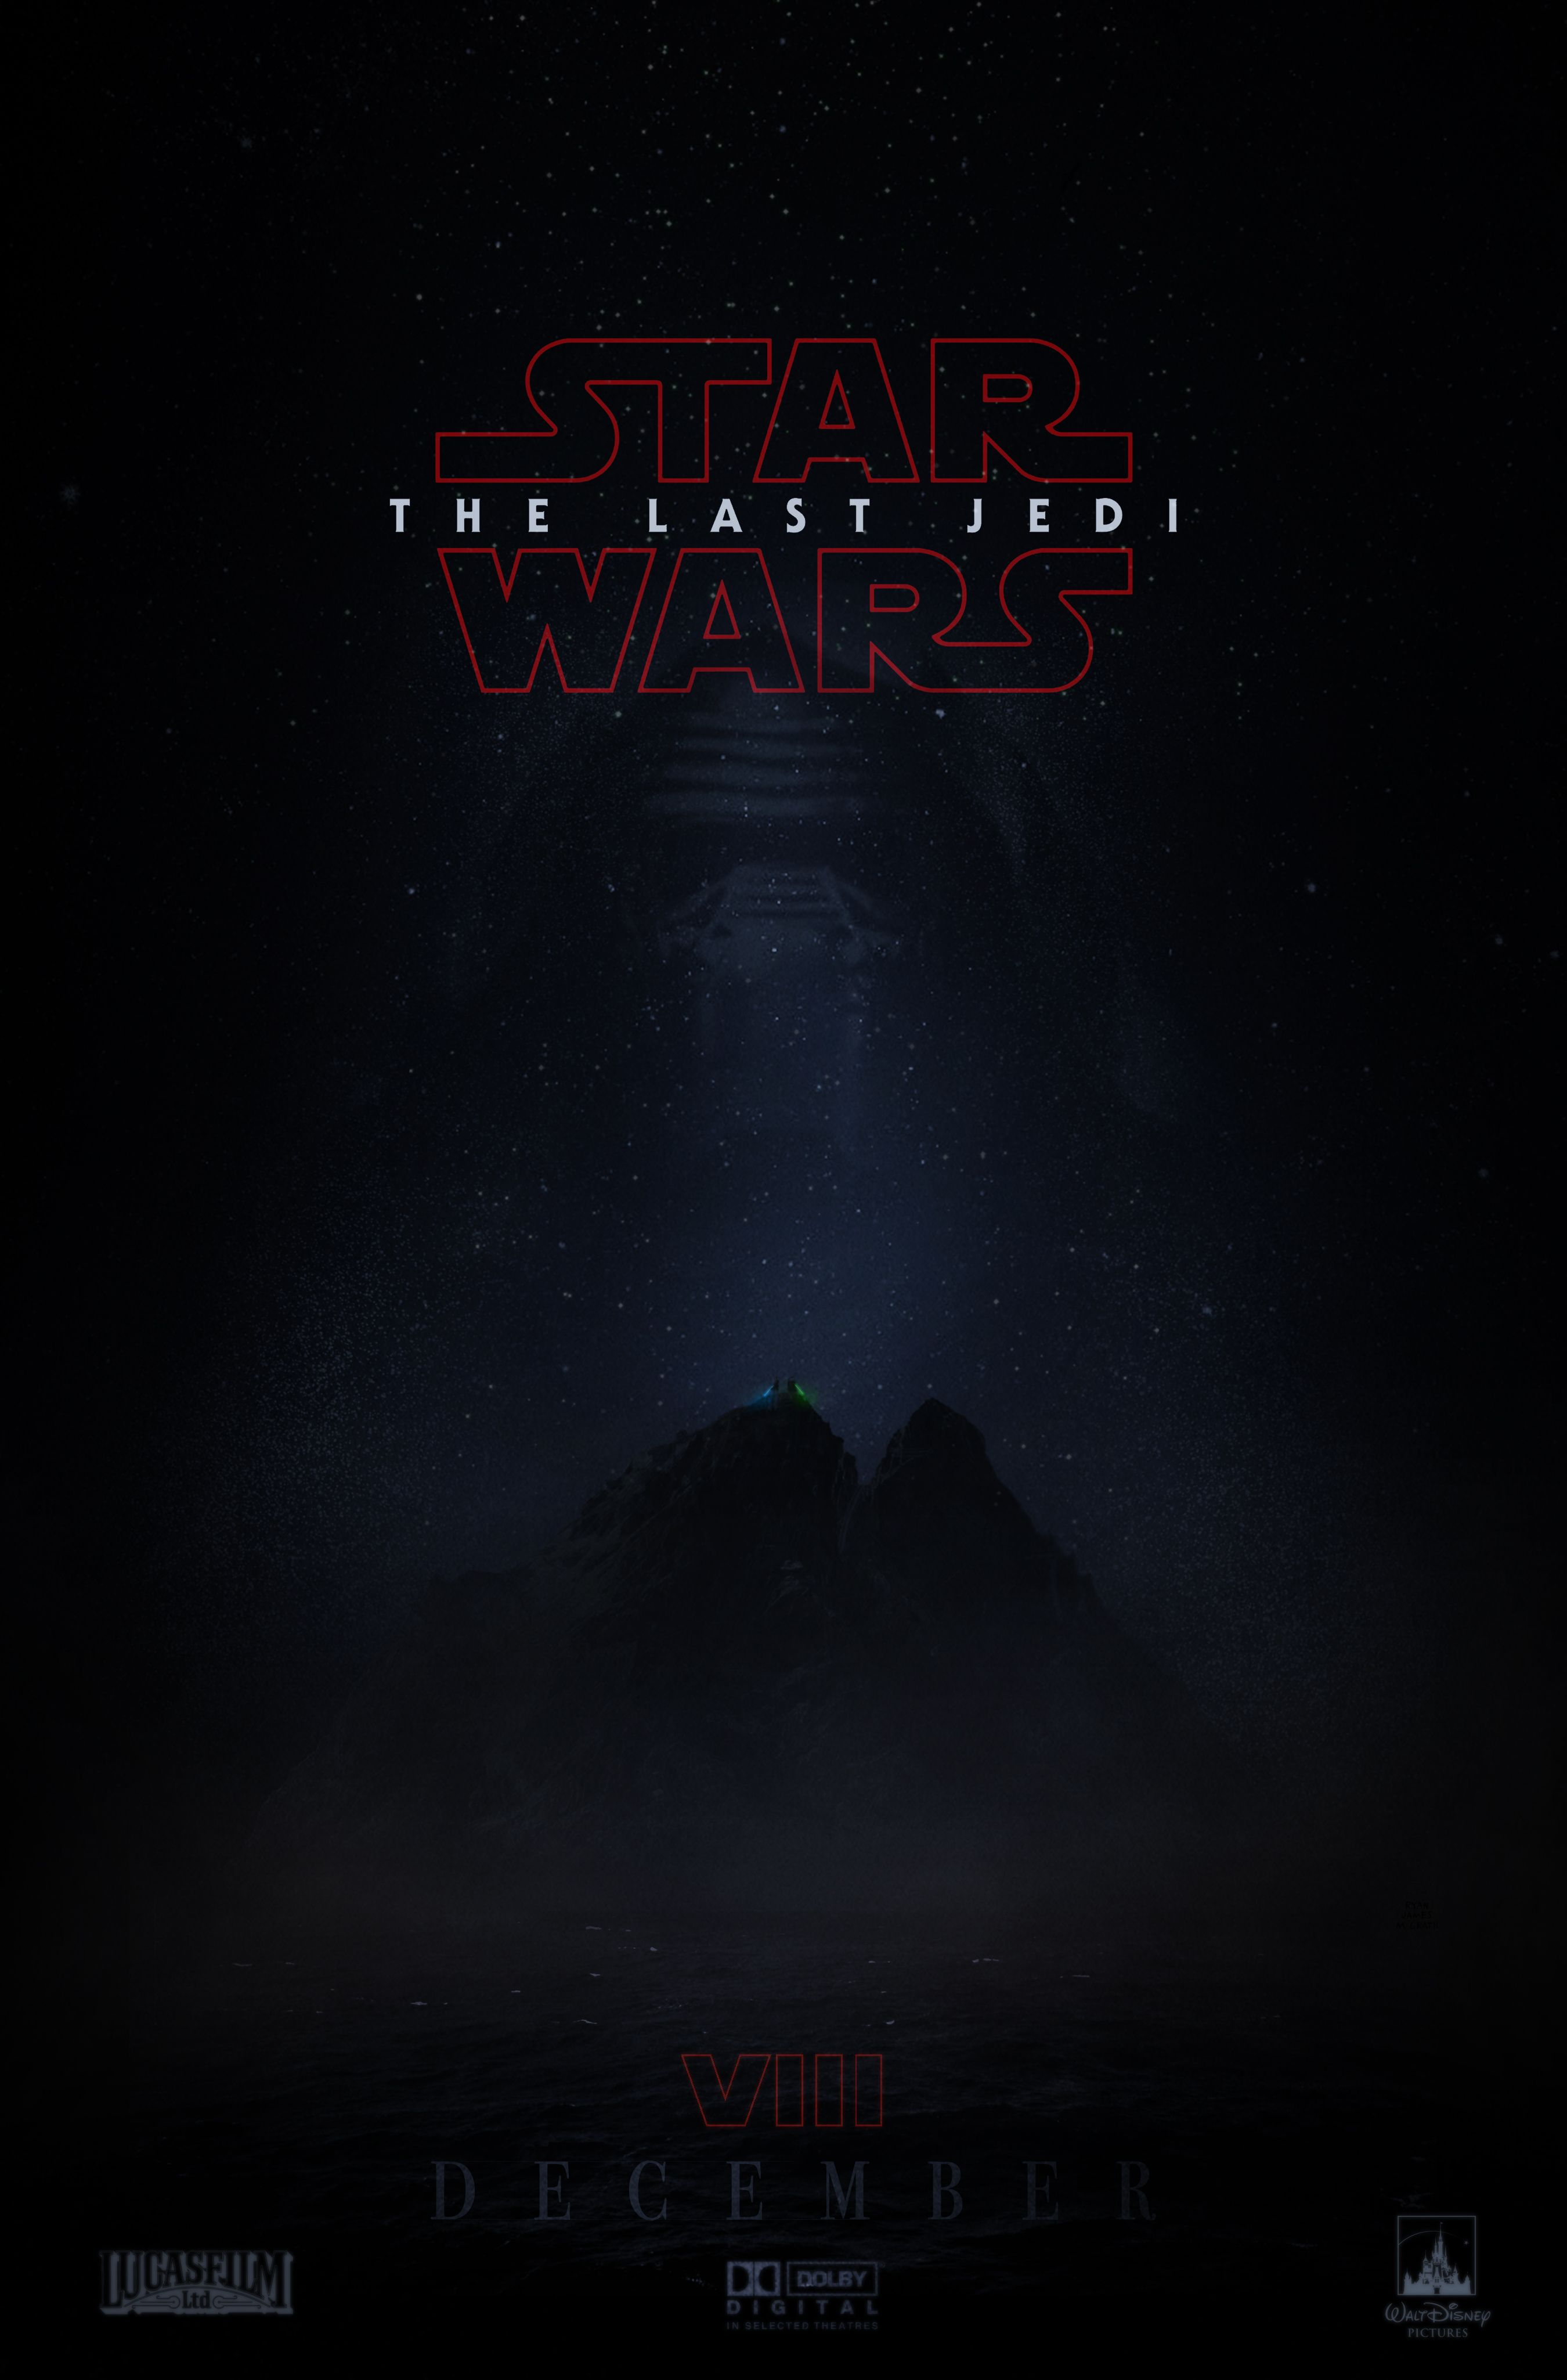 Star Wars The Last Jedi Wallpaper Hd